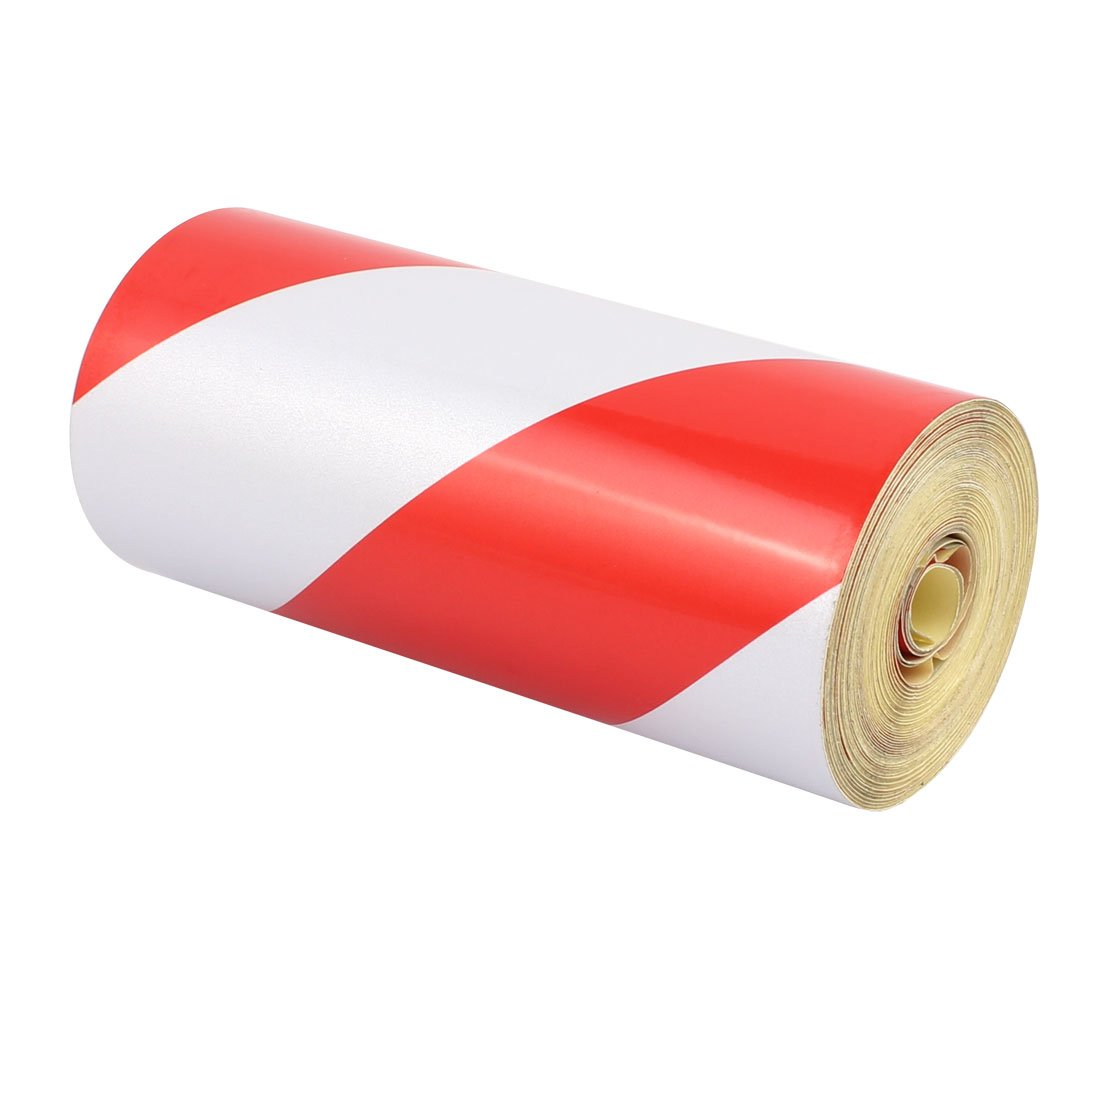 uxcell 15cm x 15M Single Sided Adhesive Reflective Safety Warning Tape Tilt Red White